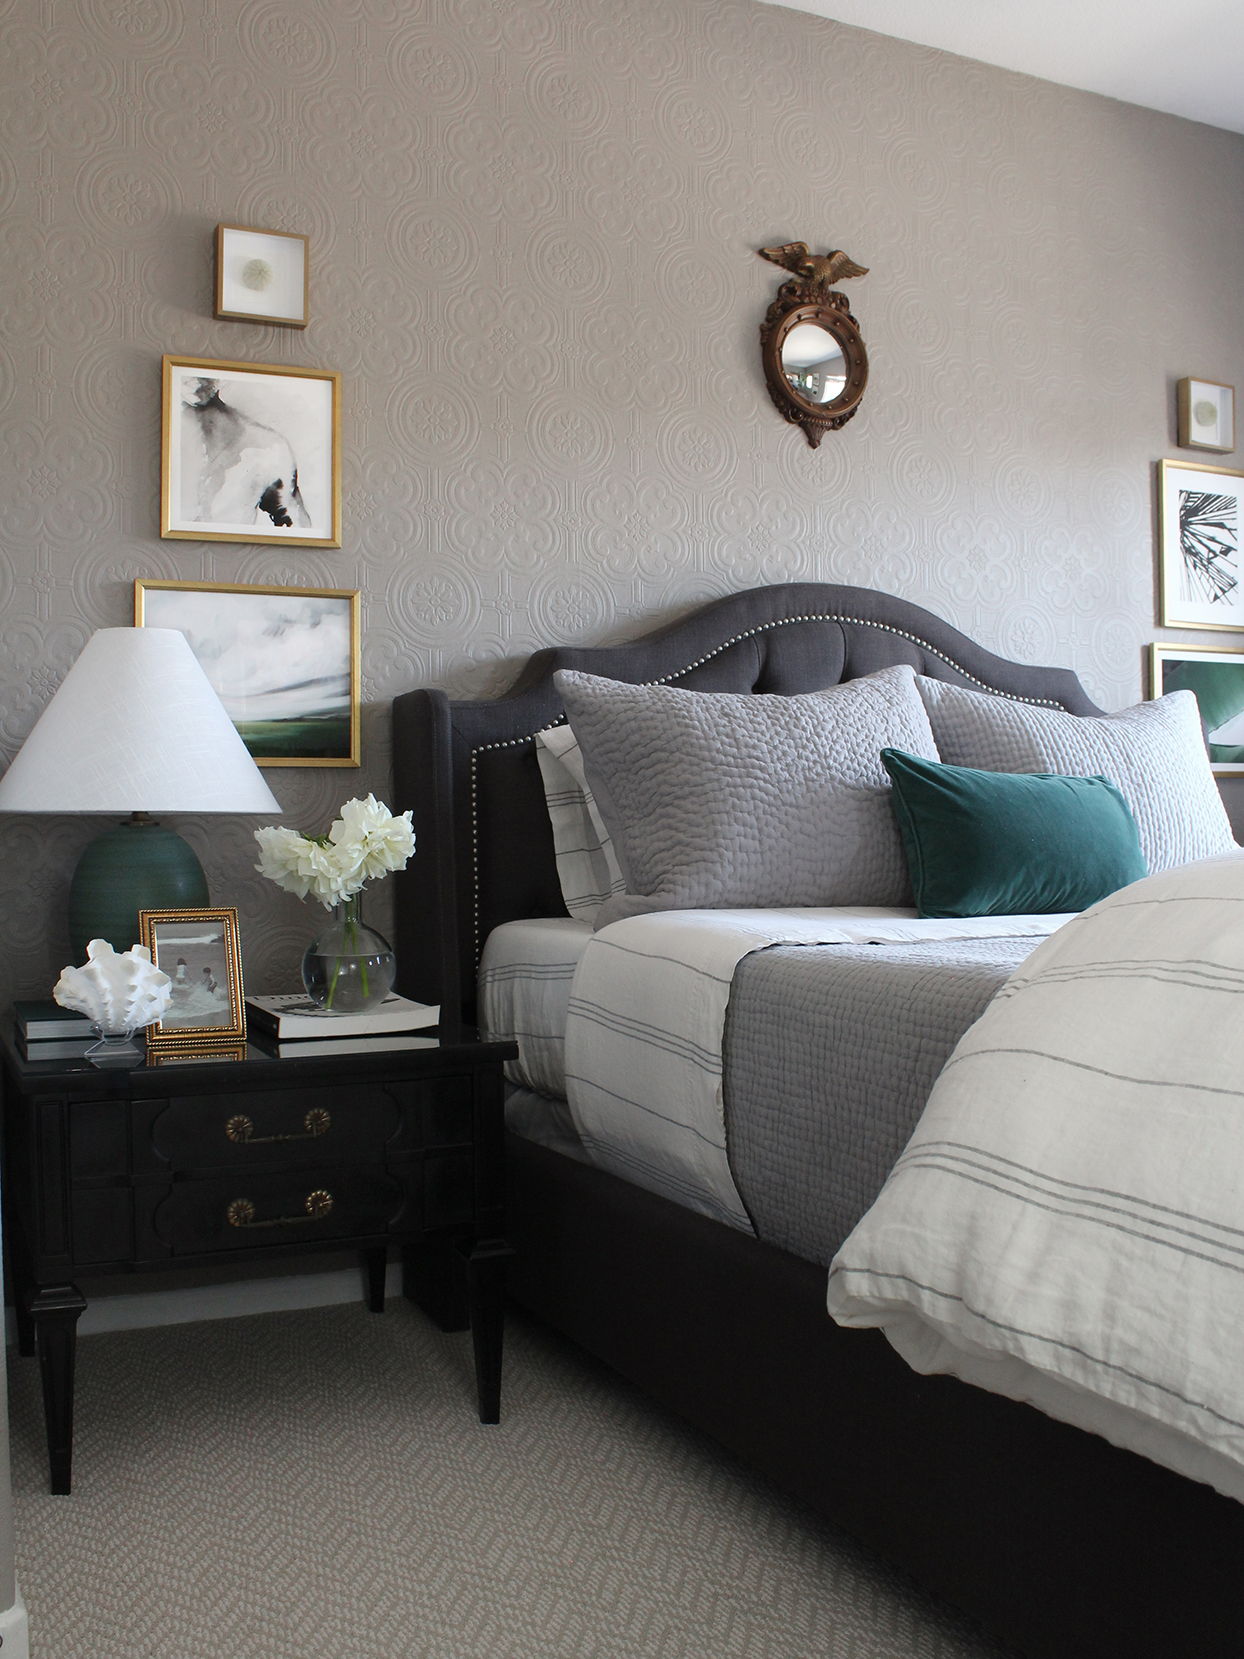 bedroom with gray walls gray headboard black nightstand with table lamp and gold-framed art hung on wall